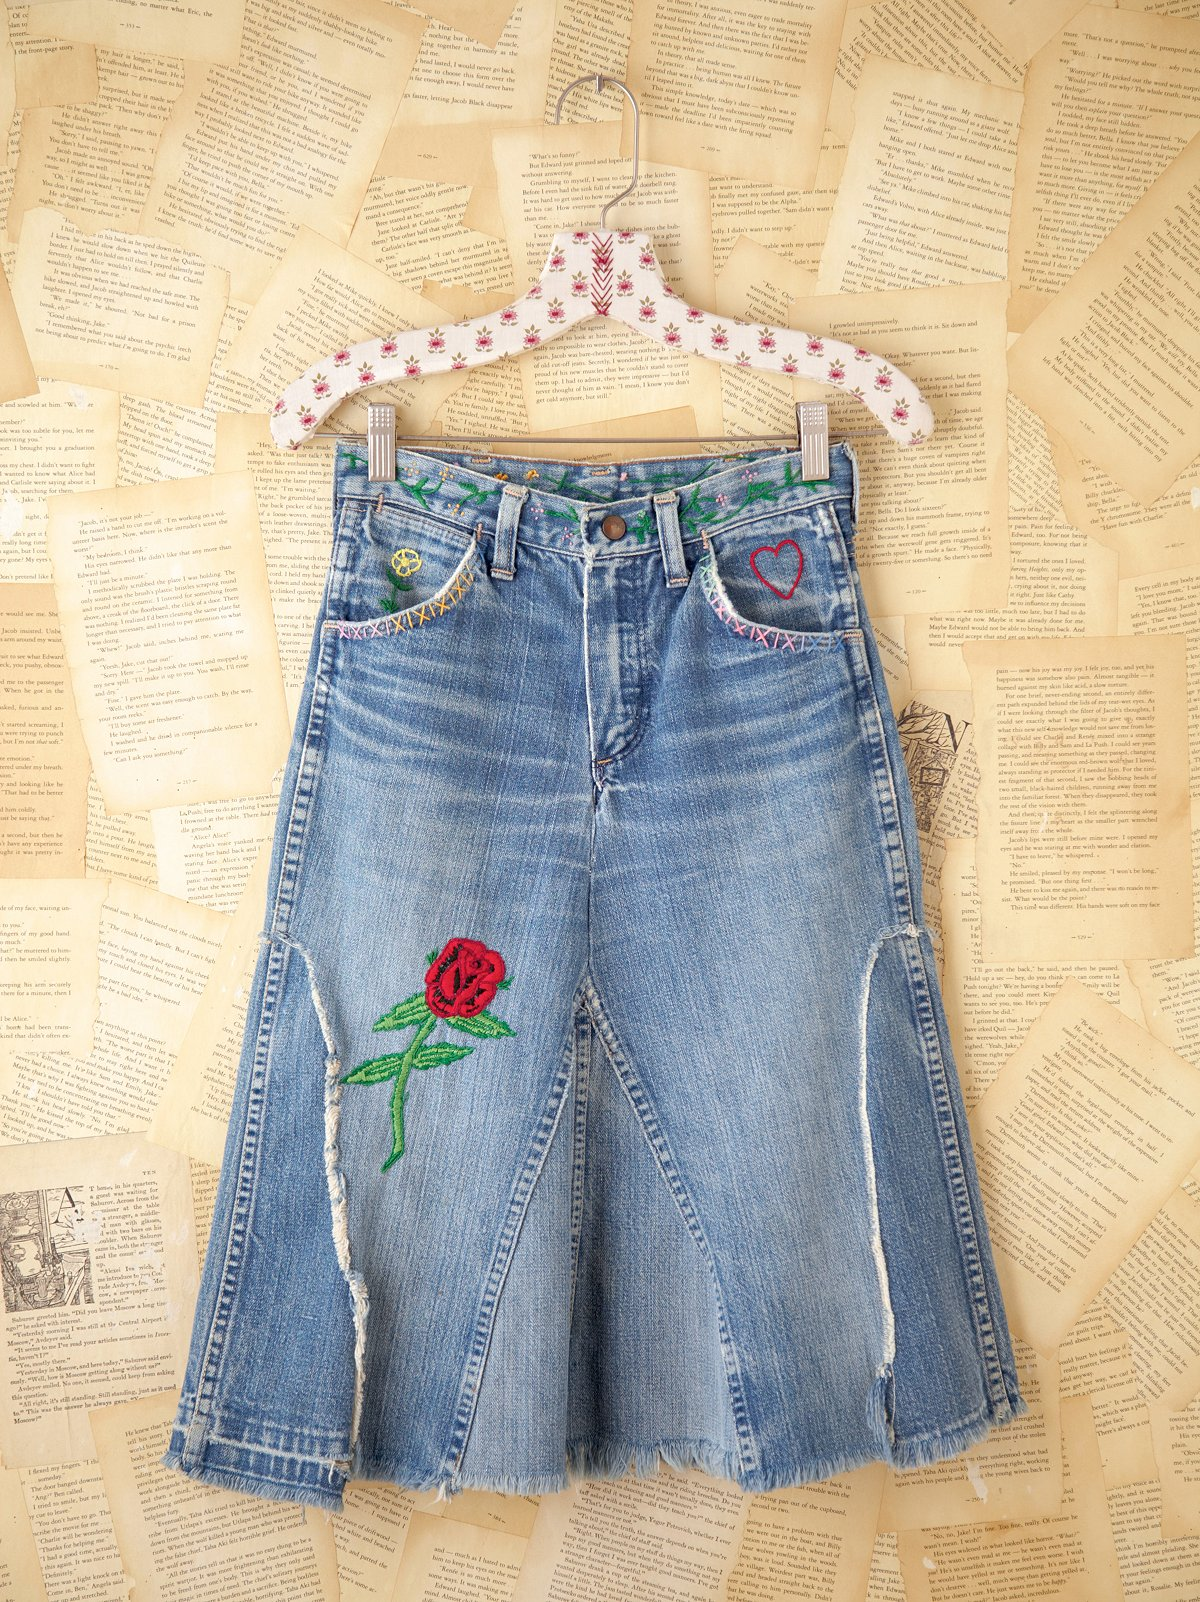 Vintage Denim Skirt with Patches